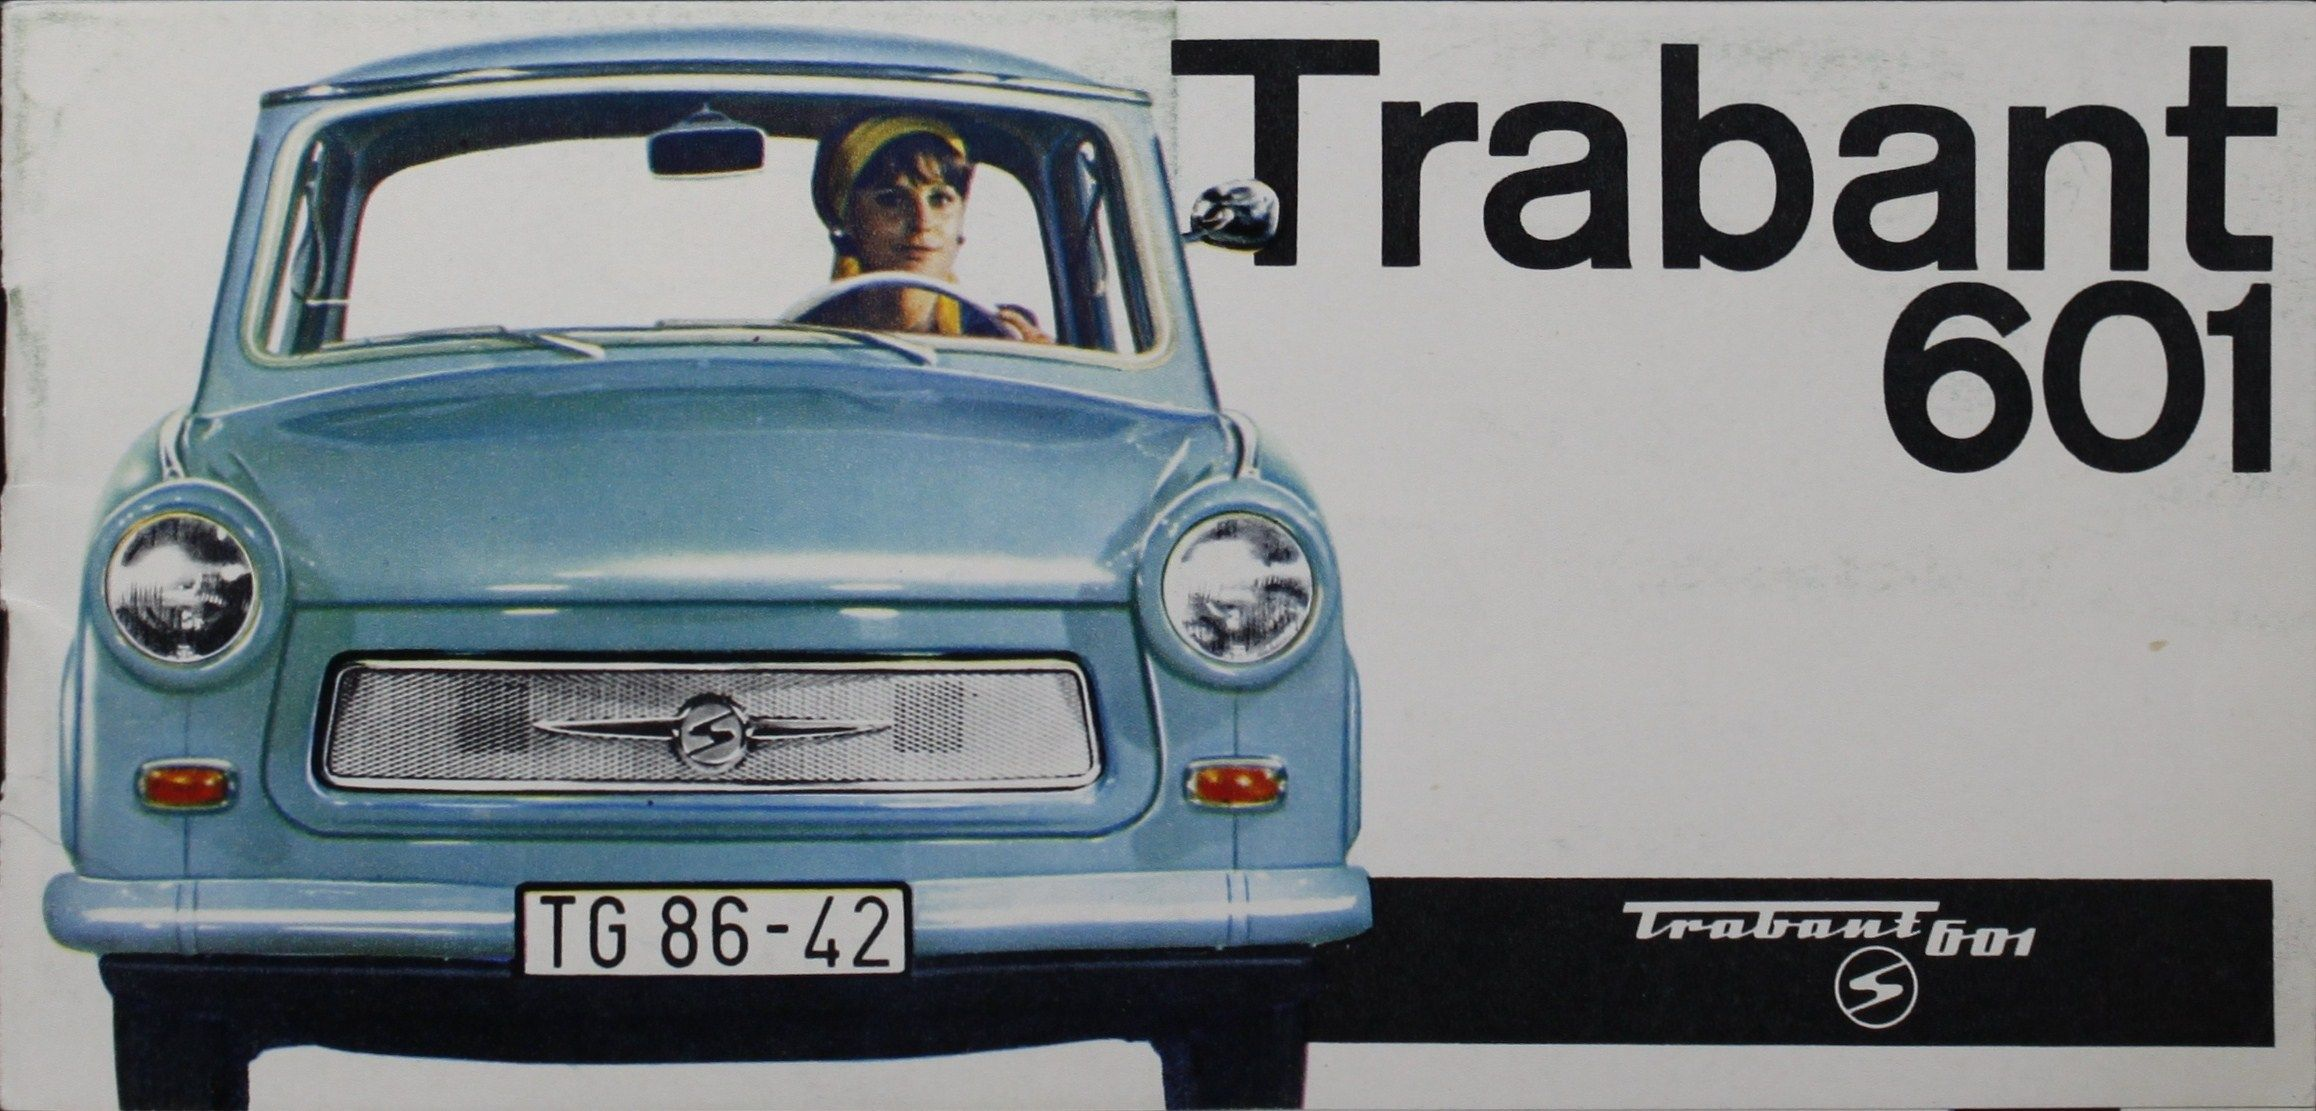 trabant 601 poster cars pinterest cars fuel economy and engine. Black Bedroom Furniture Sets. Home Design Ideas